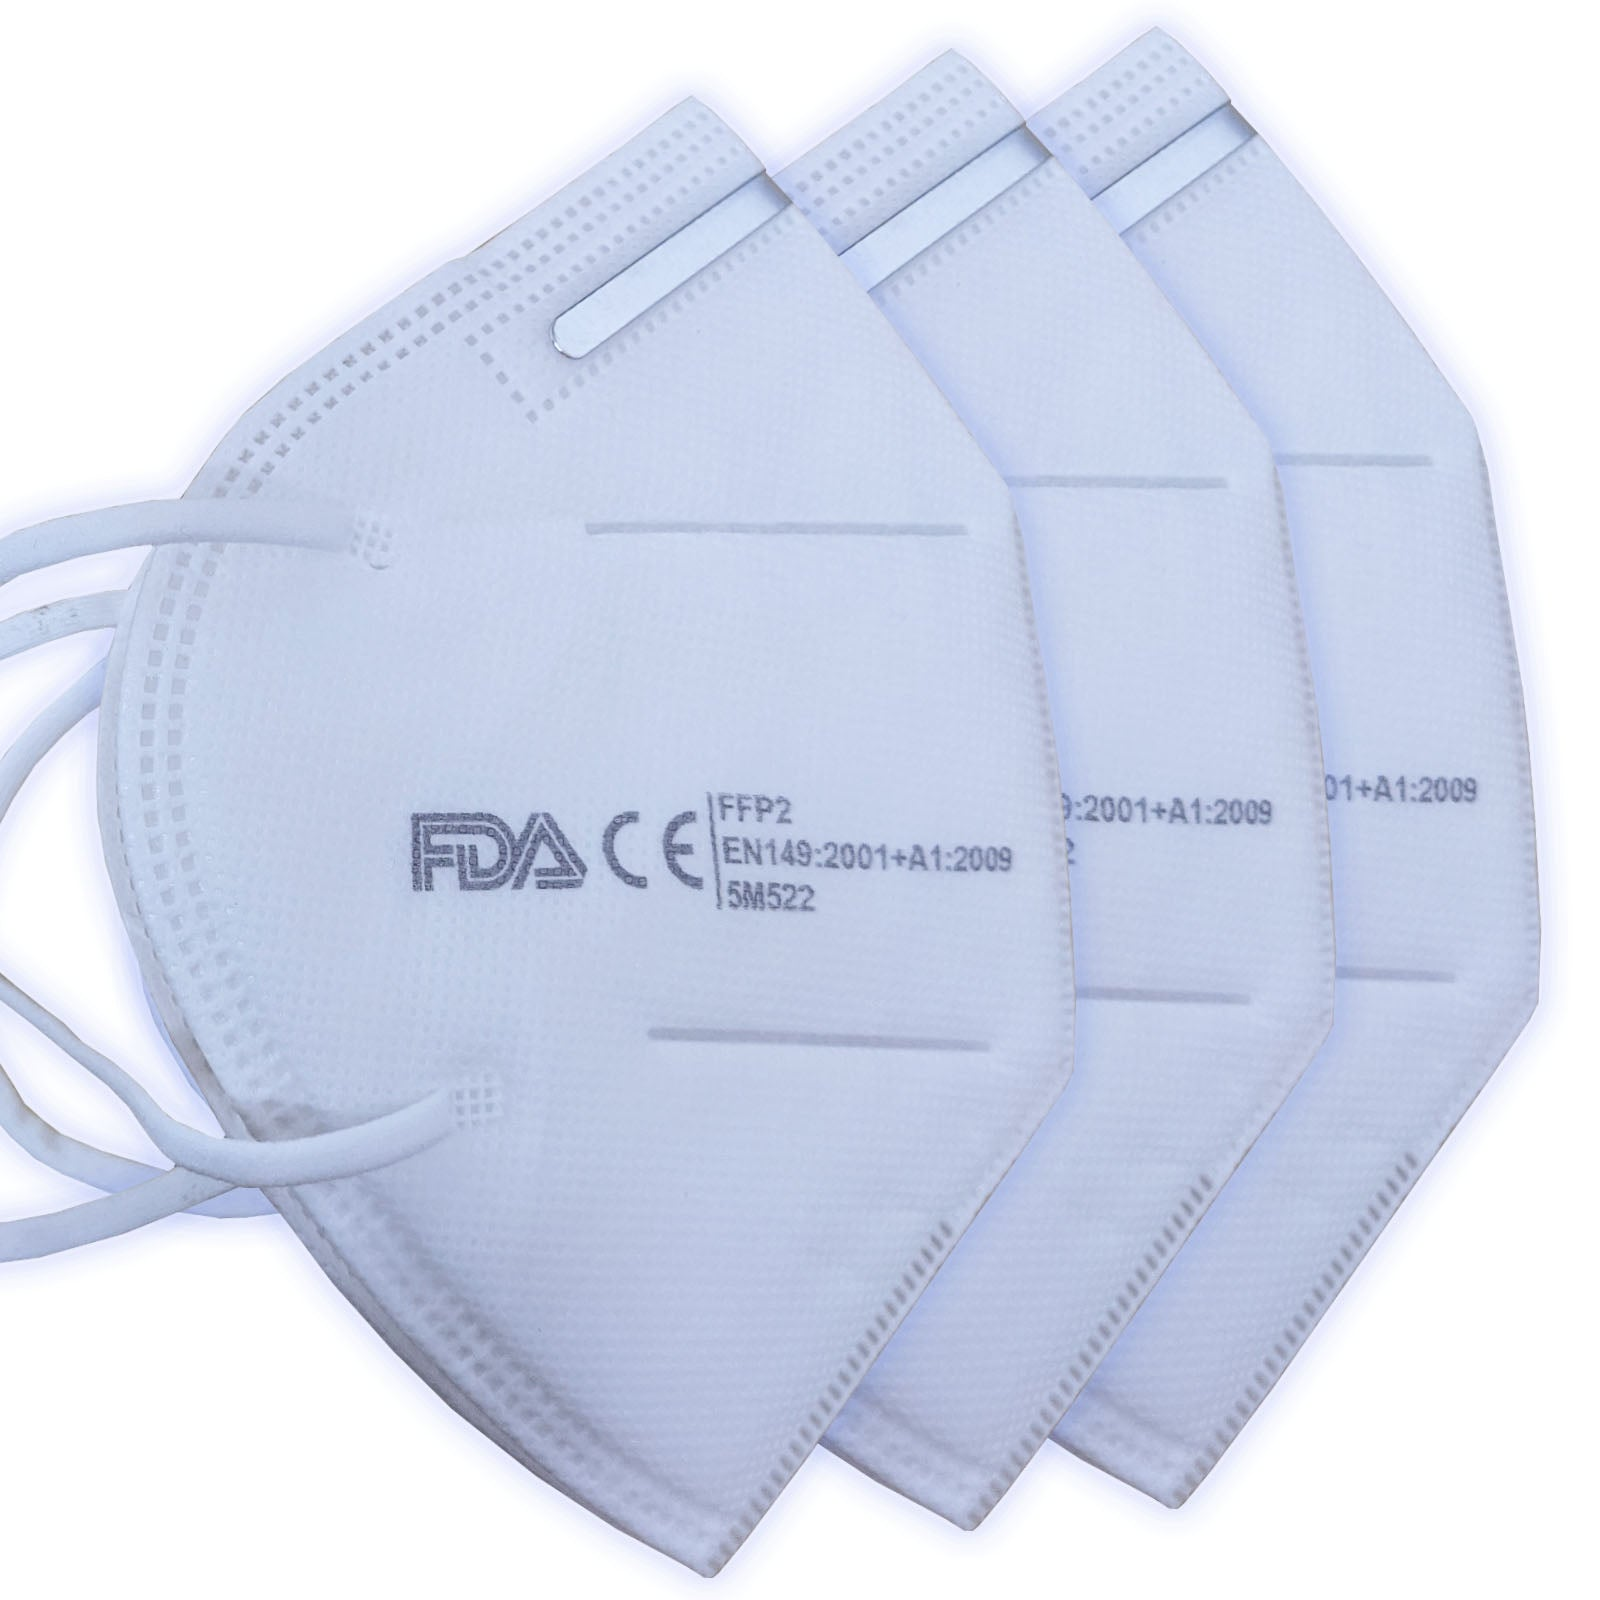 KN95 Fold Flat Mask Disposable Surgical / Medical Anti-bacterial Respirator